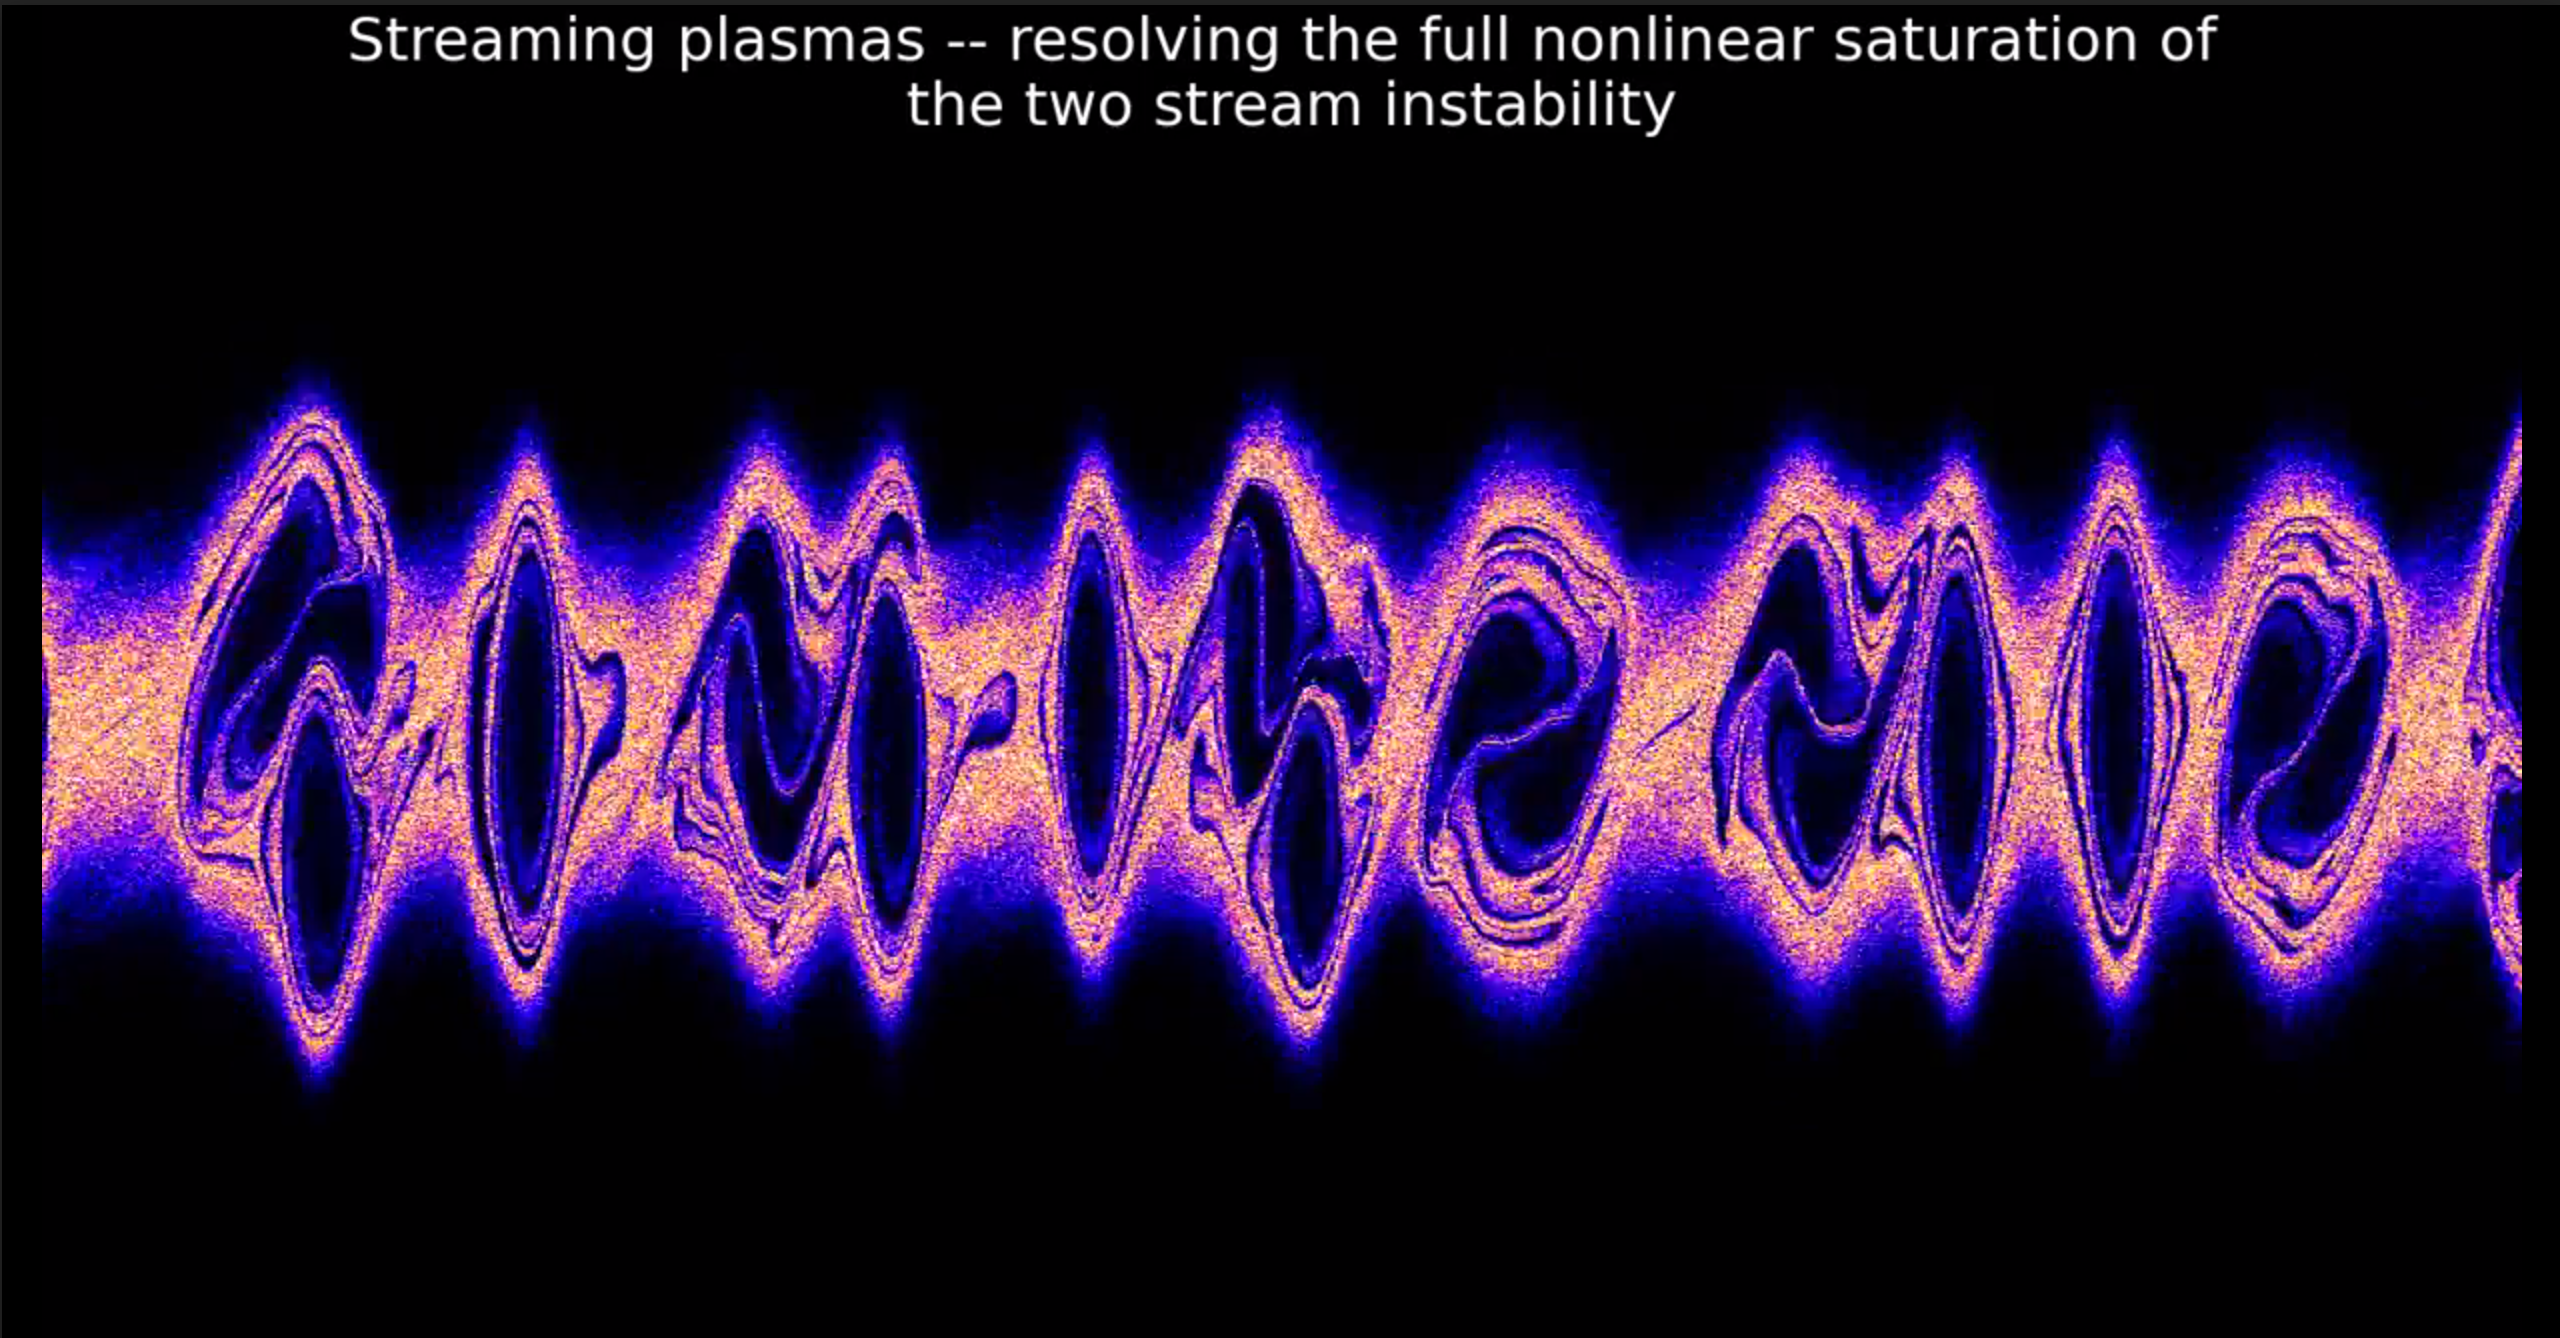 Particle-in-cell simulation of a counter streaming plasma that fully   resolves the nonlinear saturation of the two stream instability (Shalaby et   al. 2017).